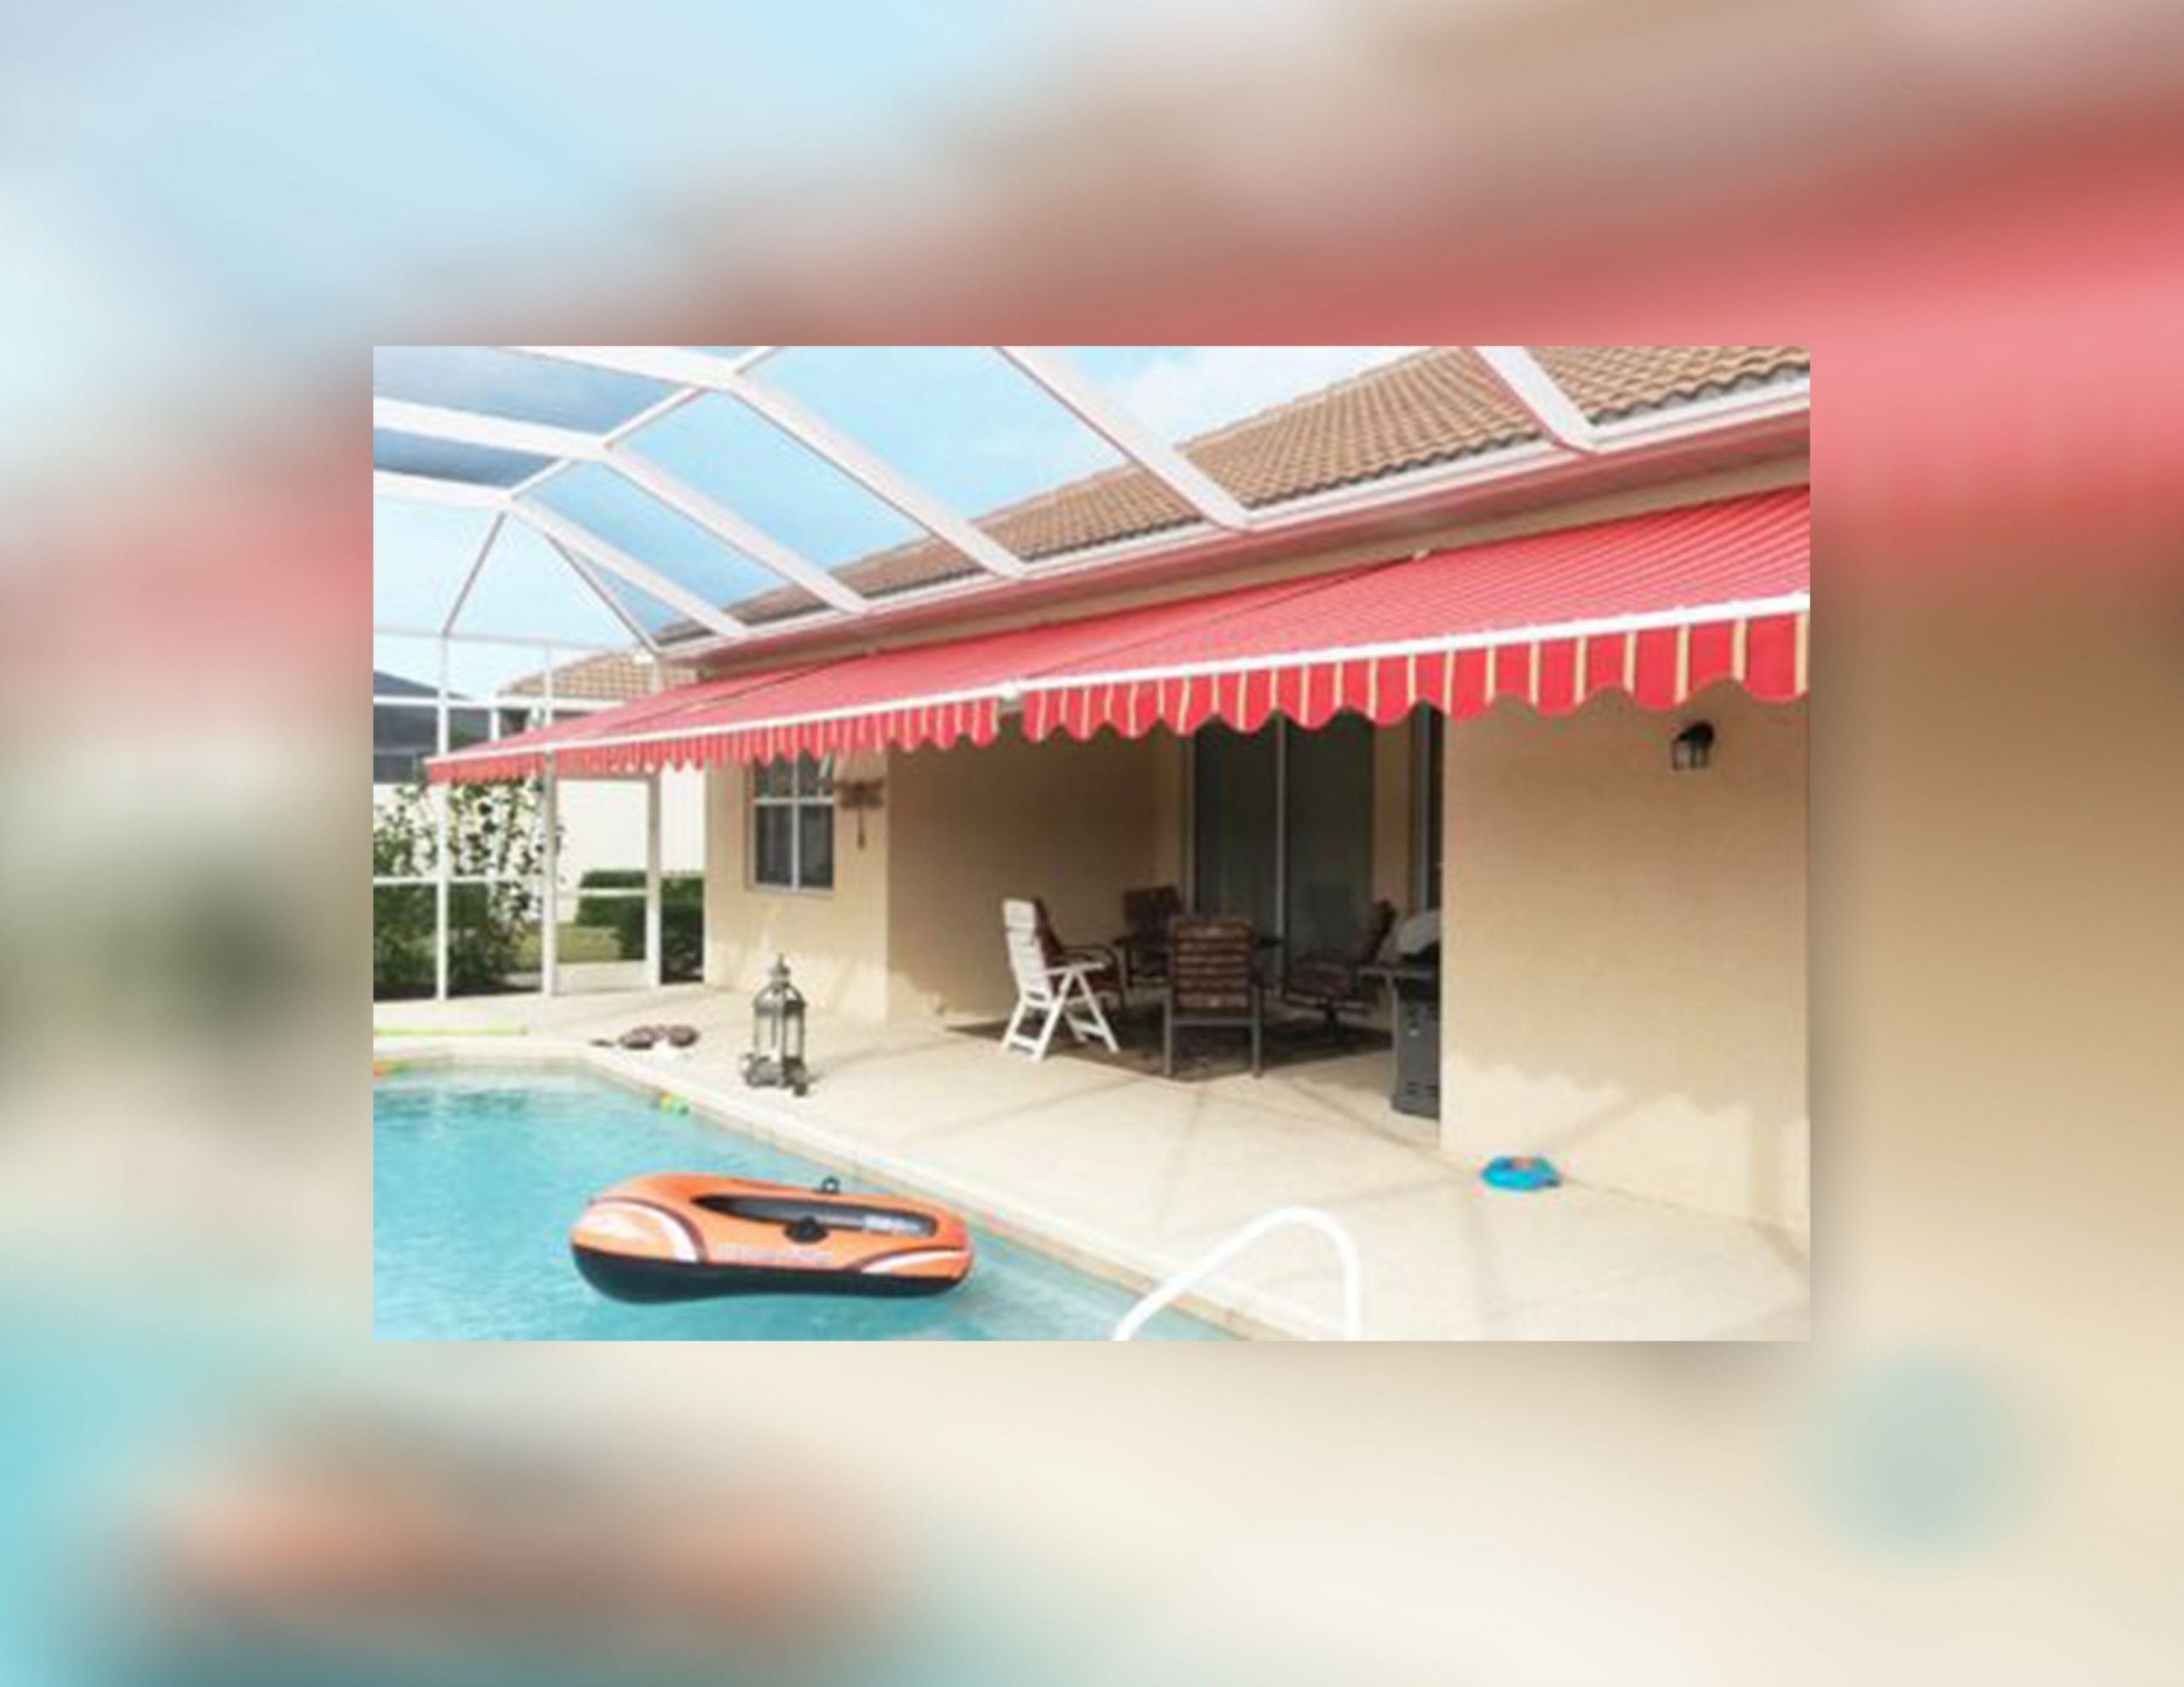 What is Retractable Awnings and where can you use it